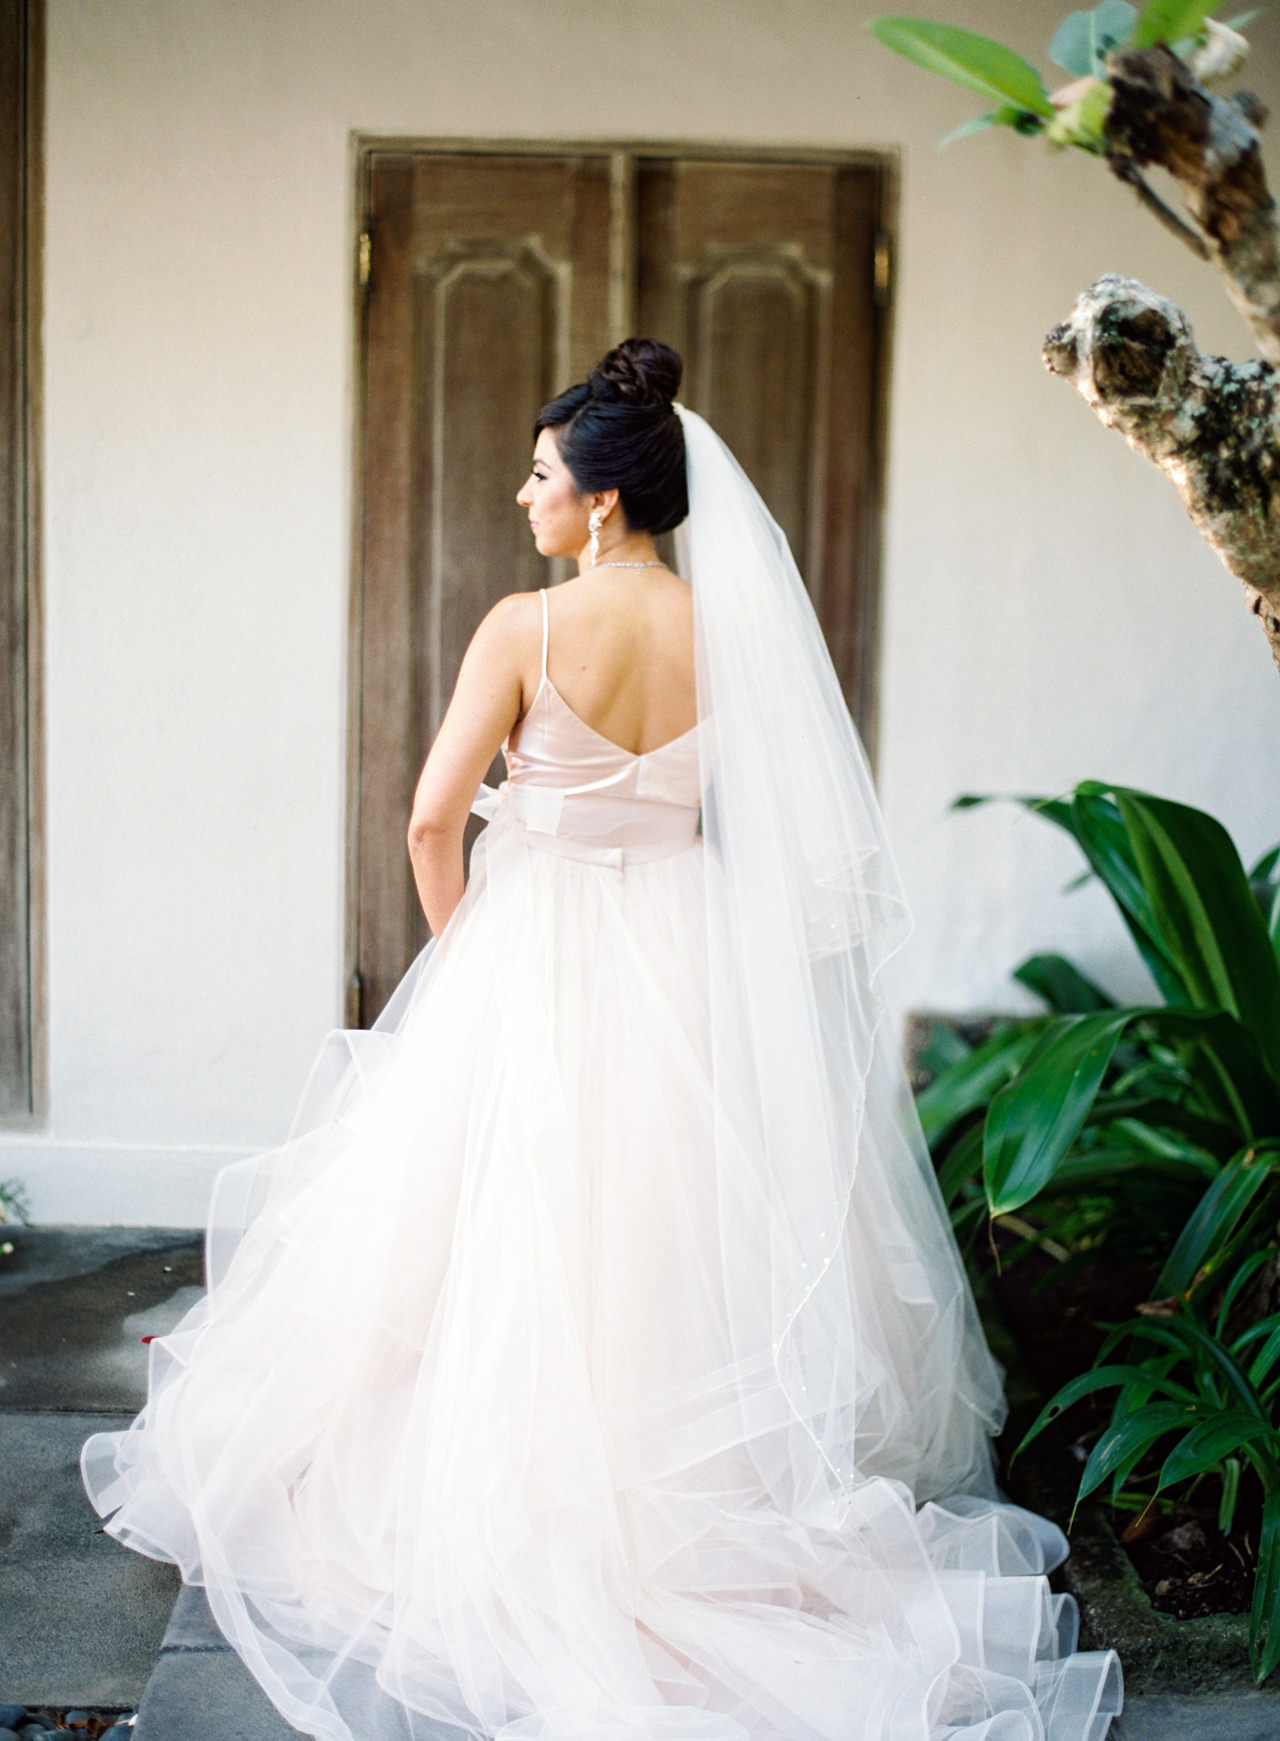 P&C: Getting Married in Bali 9